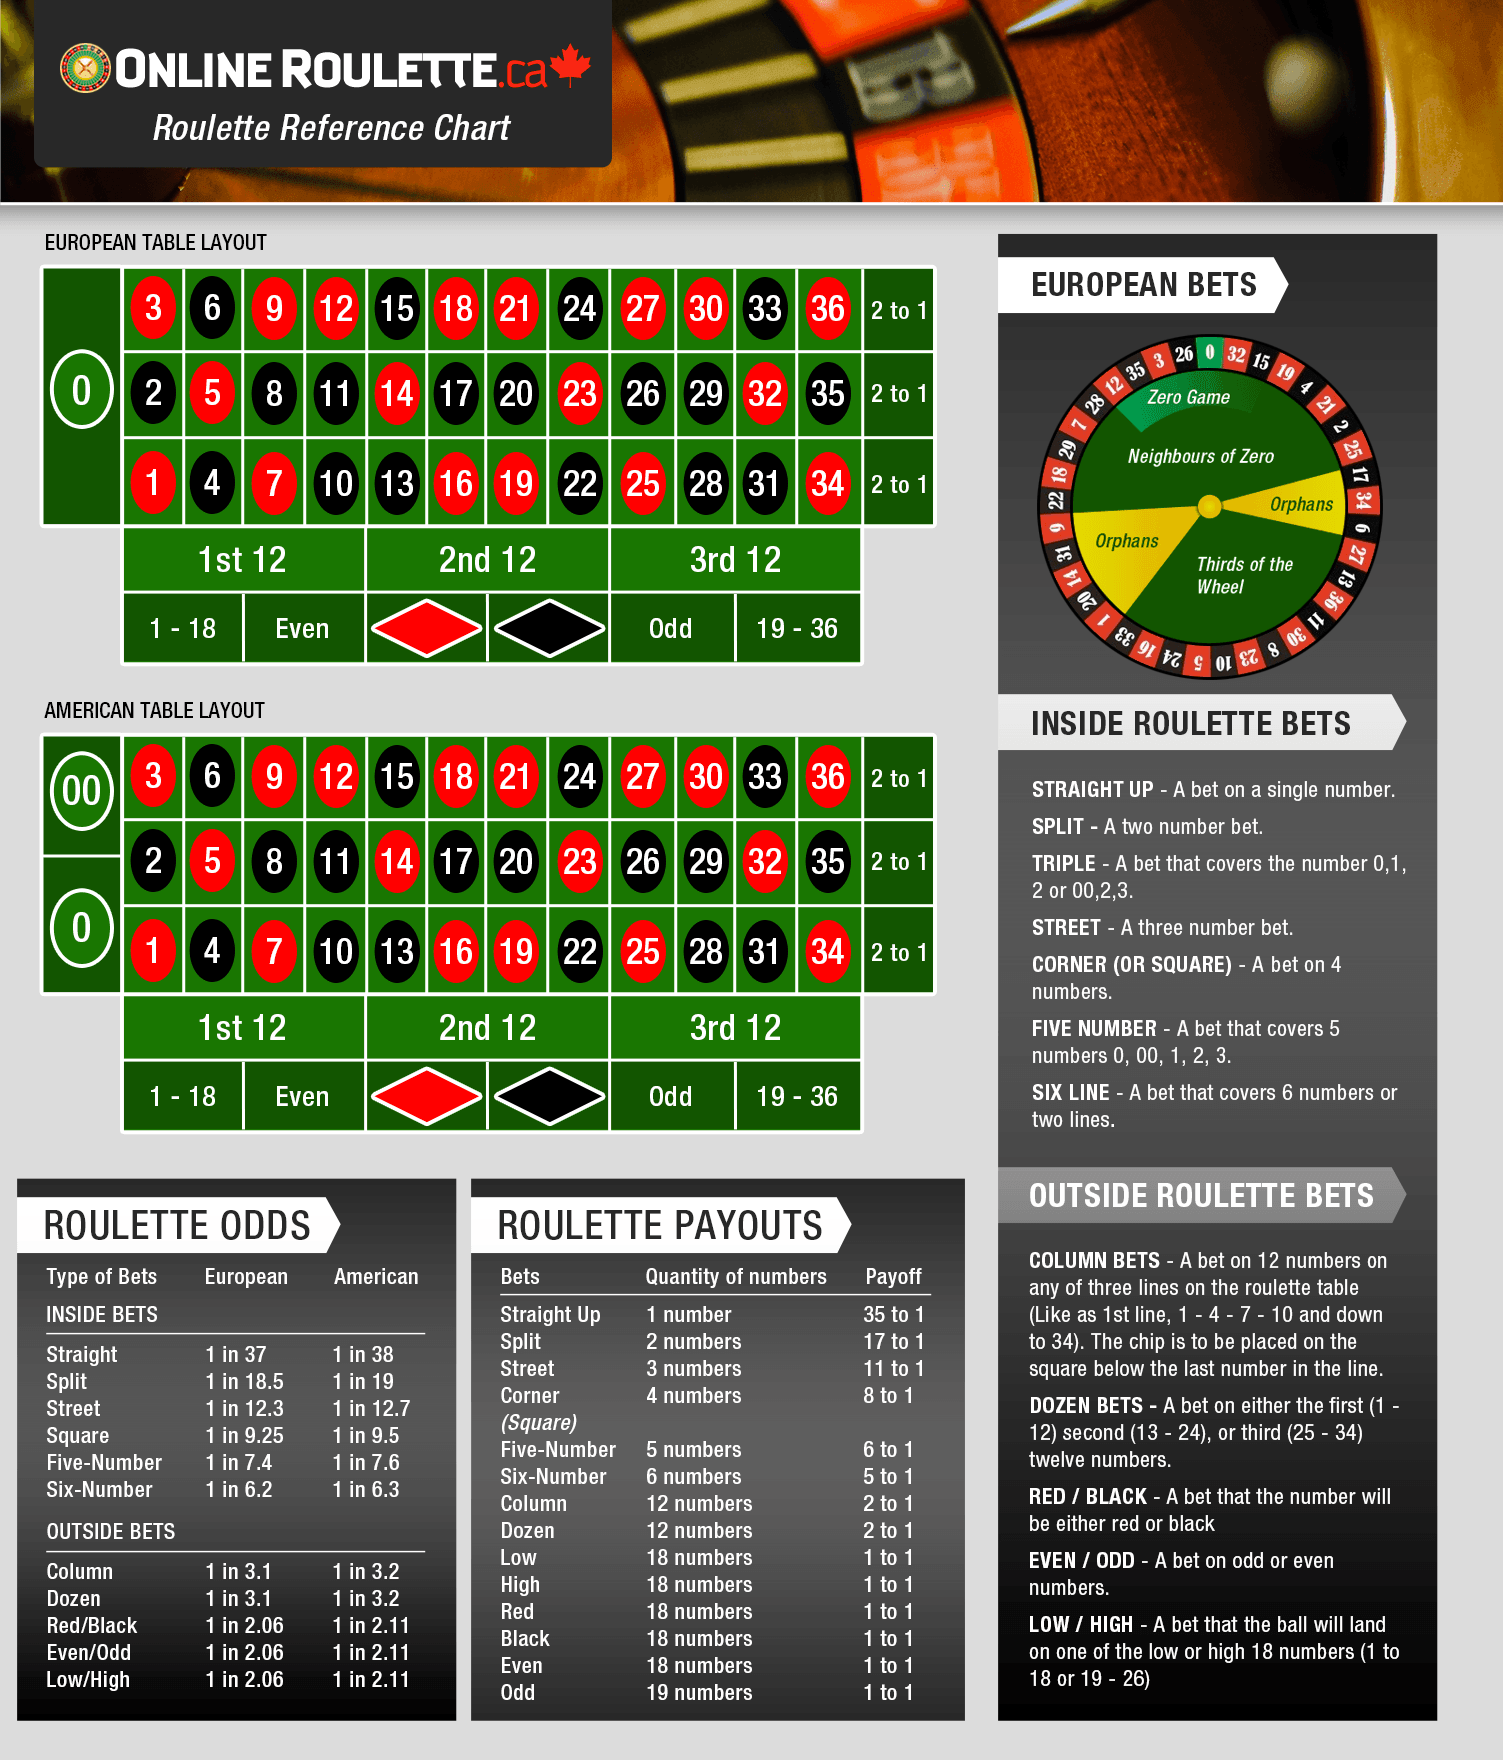 Most money bet on roulette betriebsgebiet quadrella betting